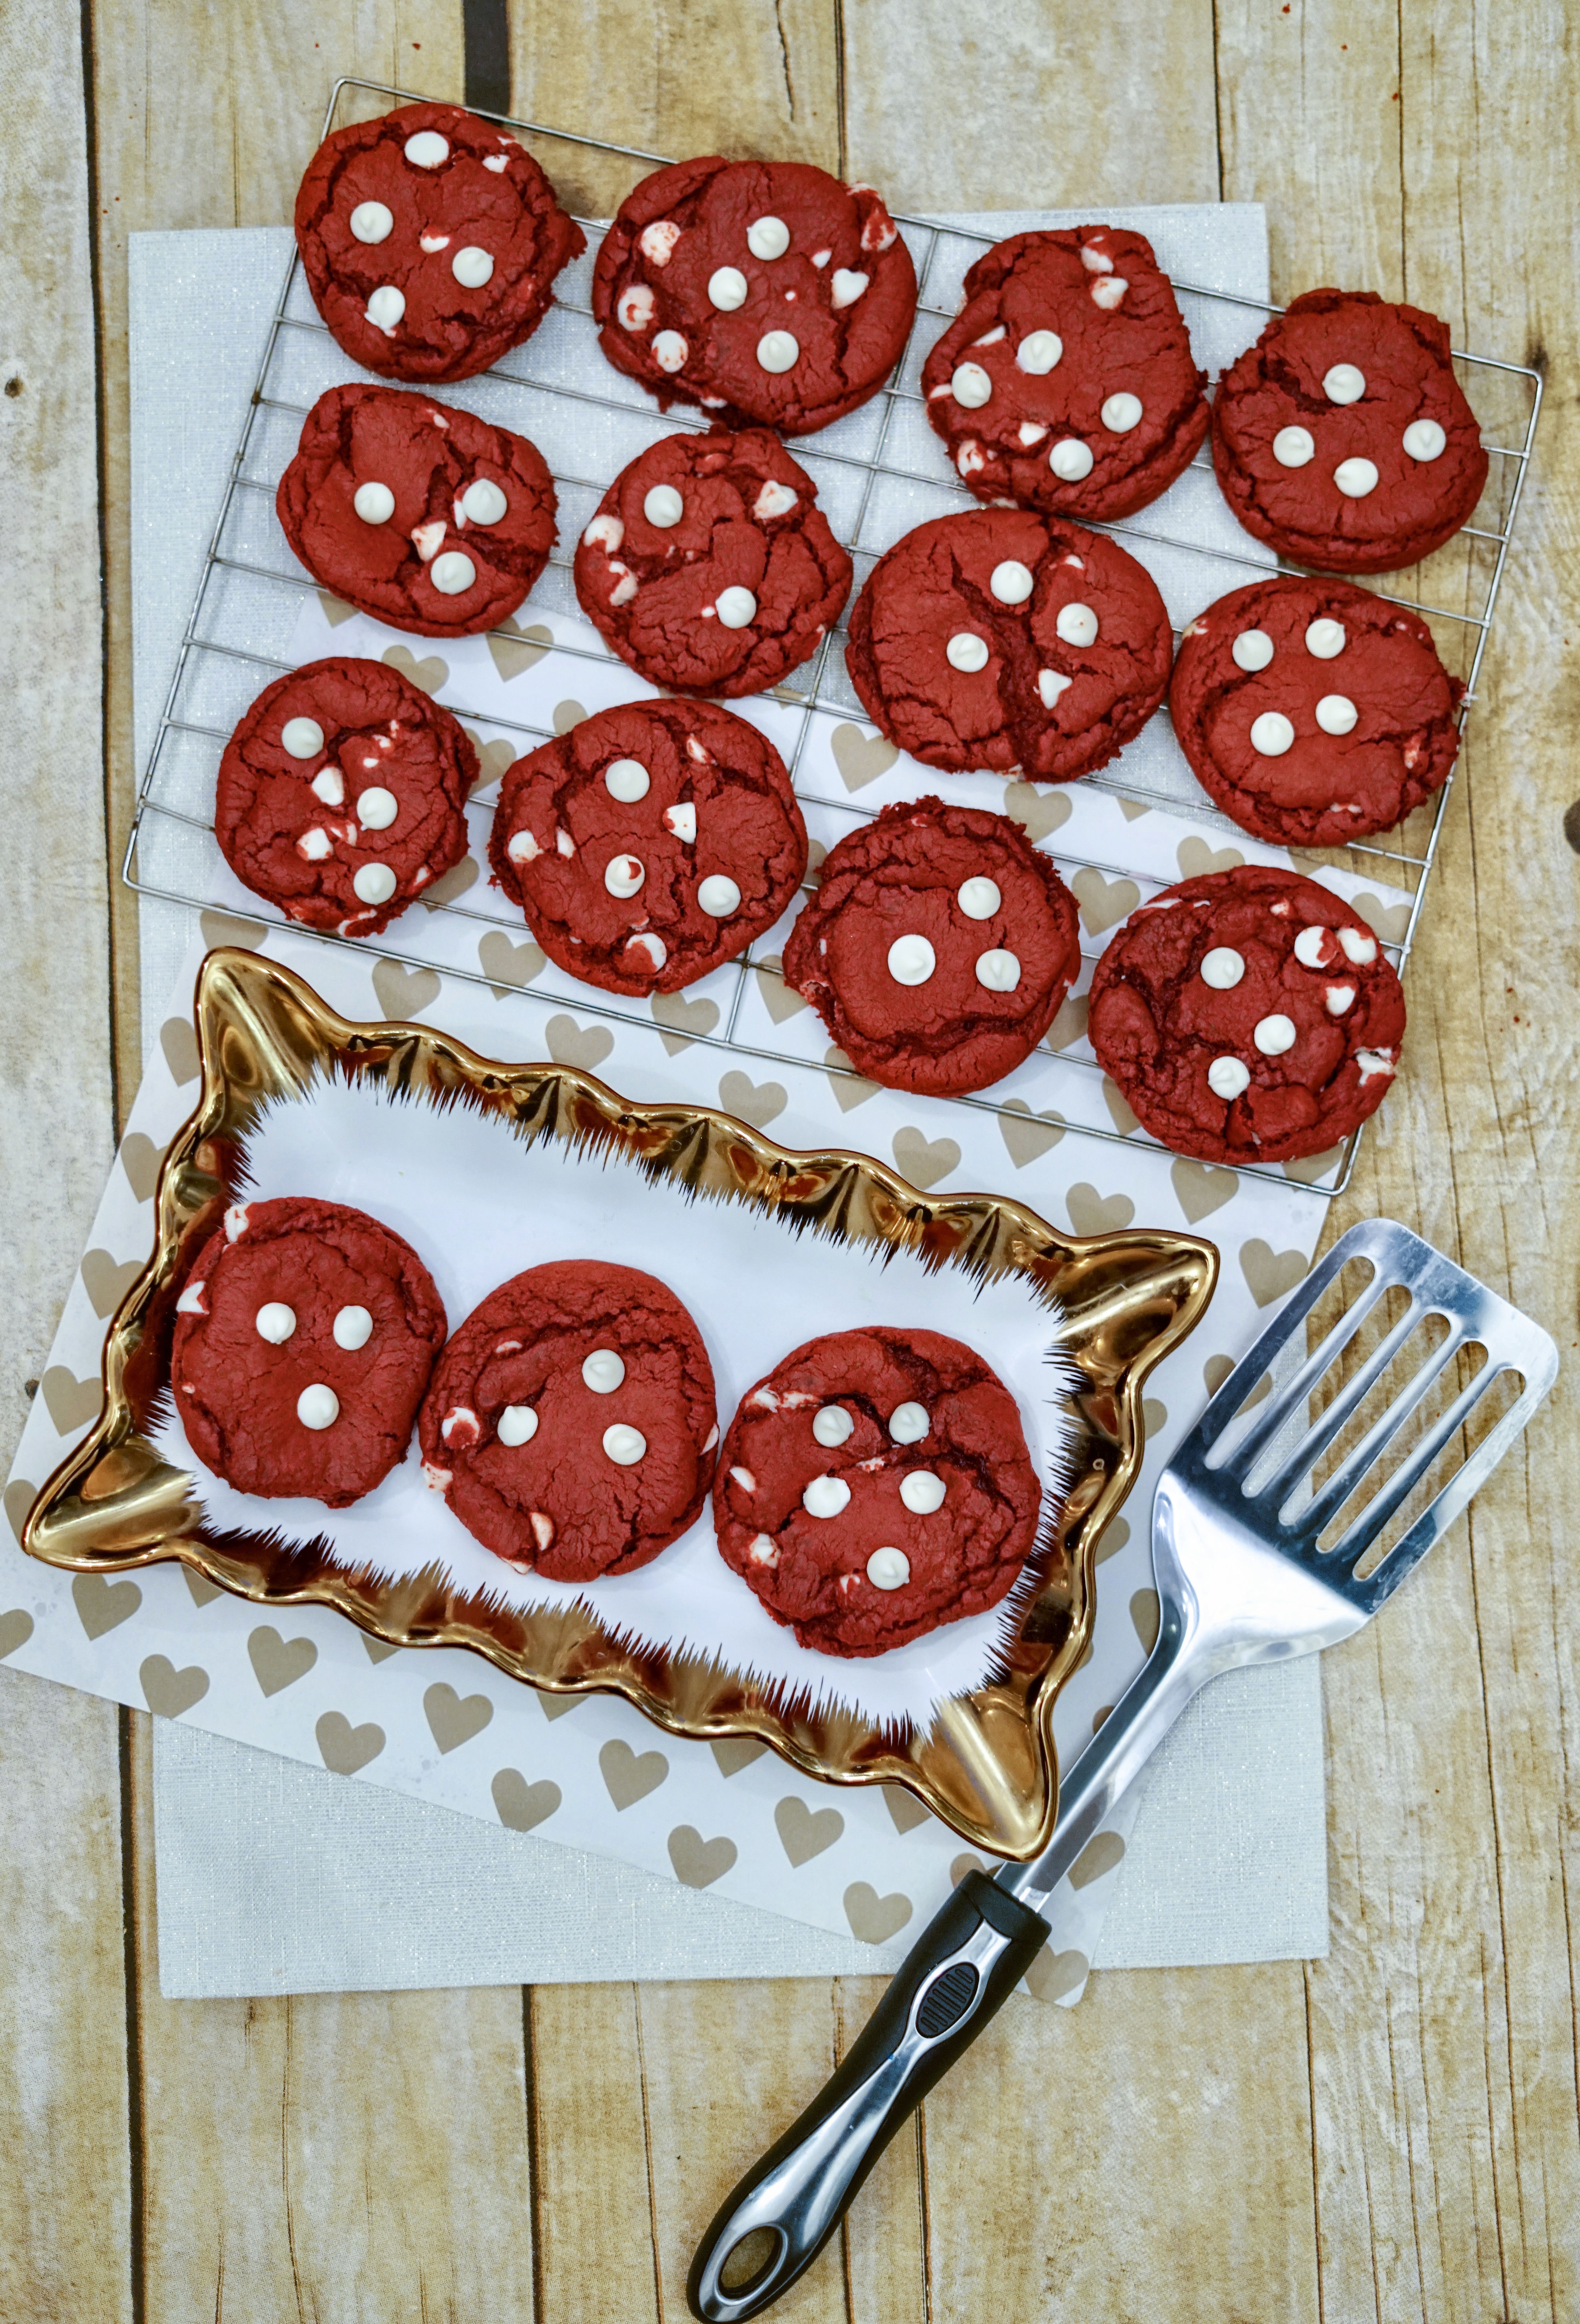 Enjoy the taste of delicious Red Velvet Cake in a yummy cookie with this easy recipe.